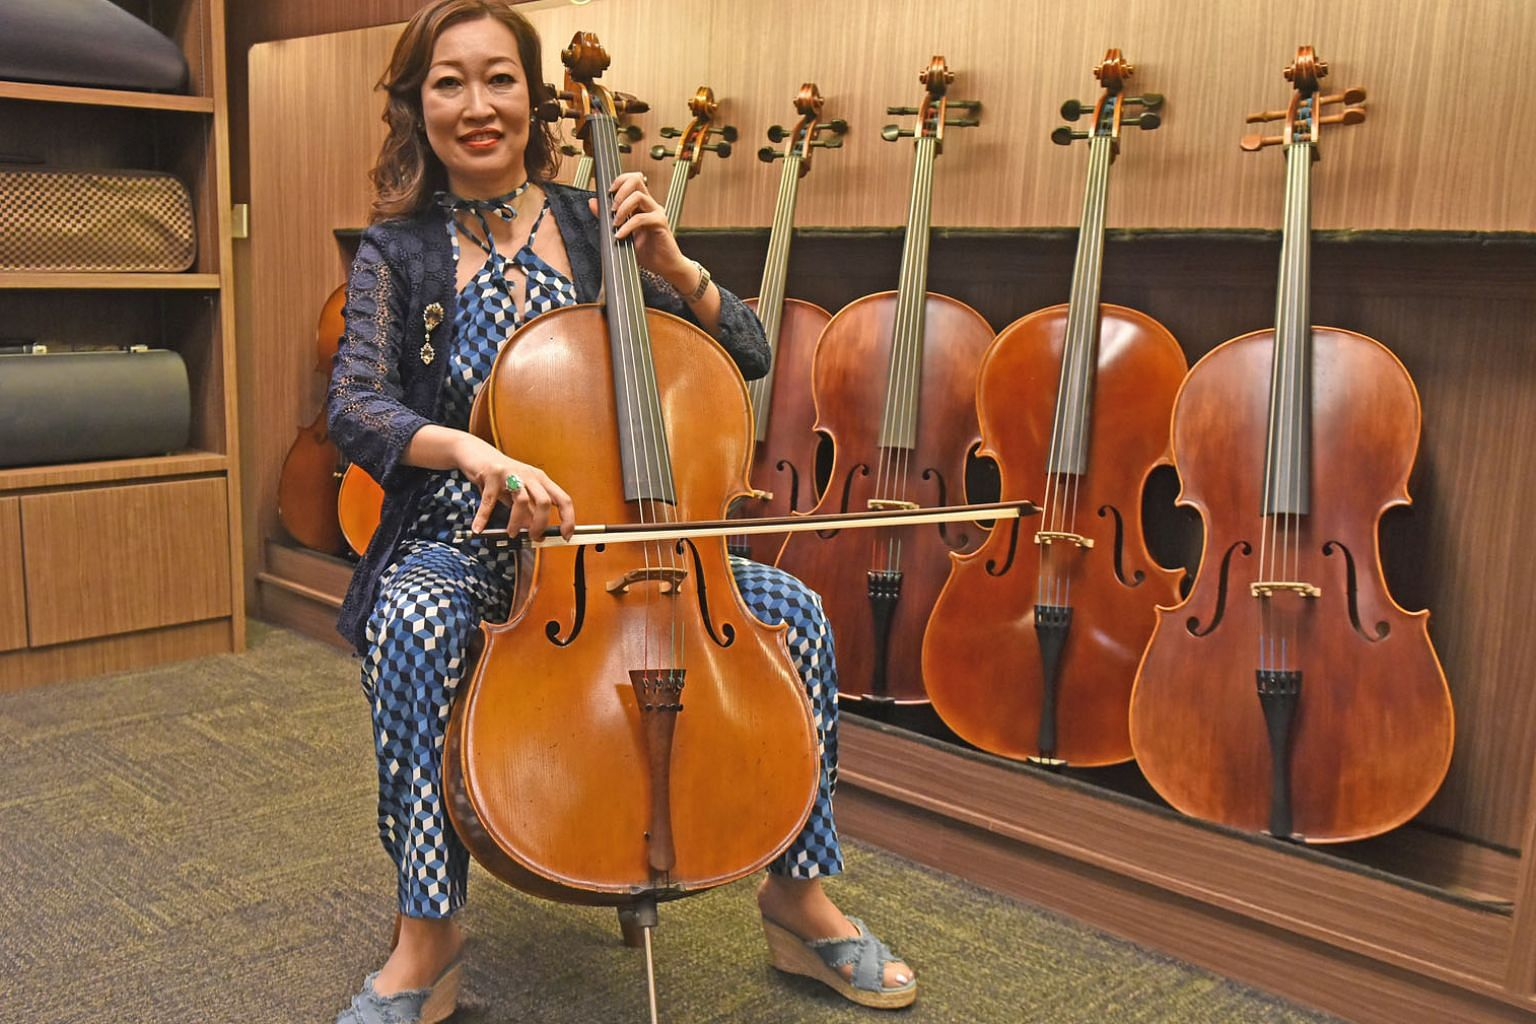 Ms Rita Yeo, director of Stradivari Strings, owns antique music instruments which have appreciated in value over time. She says that before she invests in anything, she spends time researching and understanding it, and makes sure it has high potentia